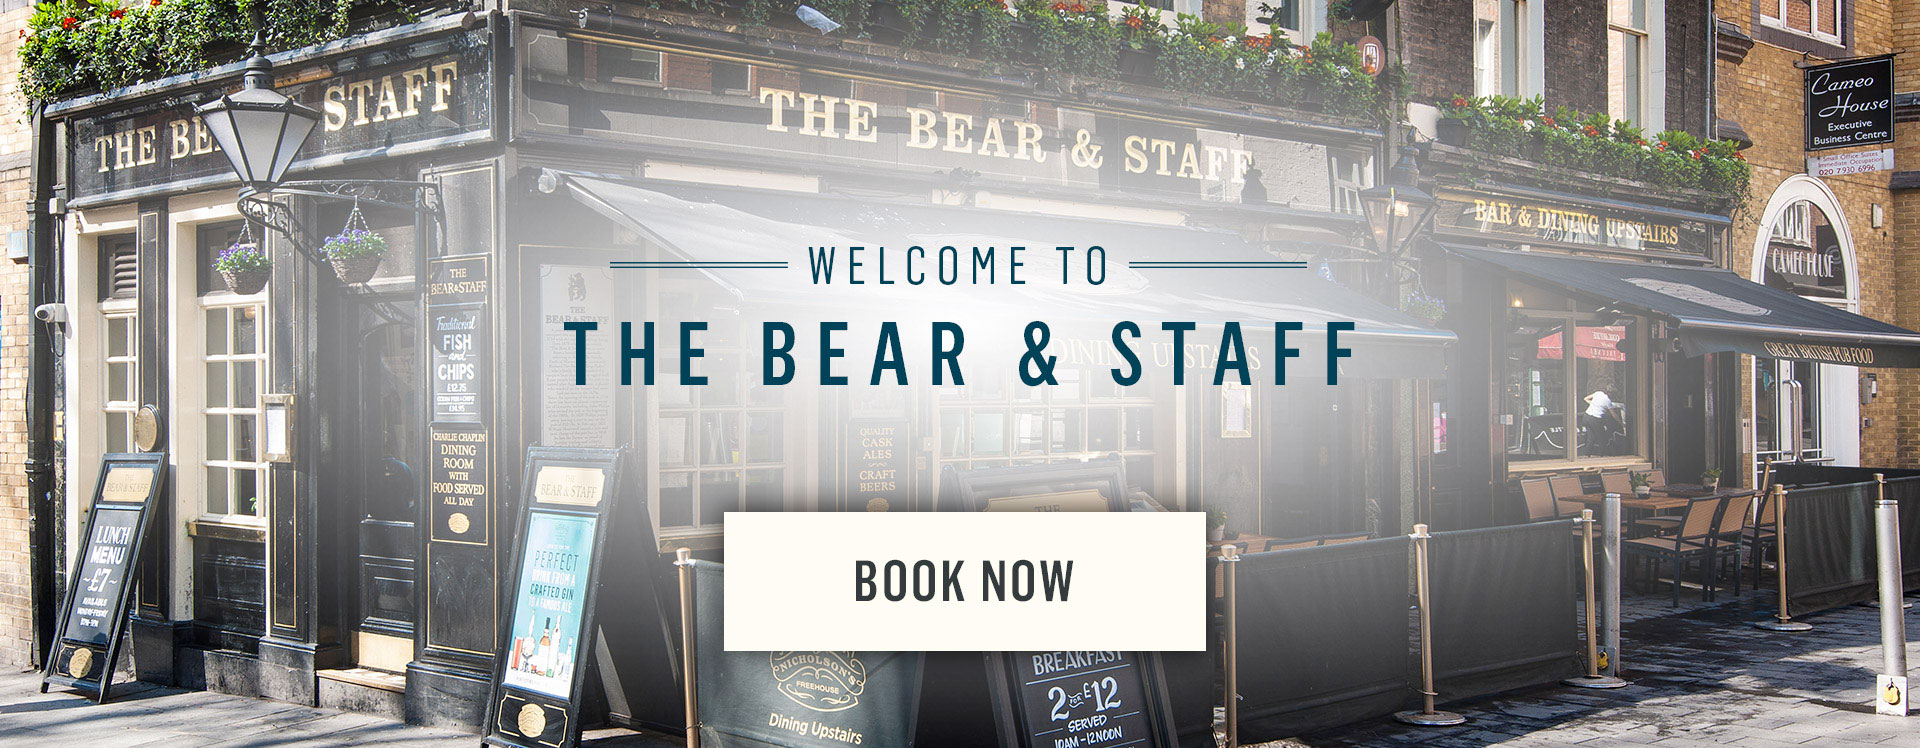 Welcome to The Bear and Staff - Book Now